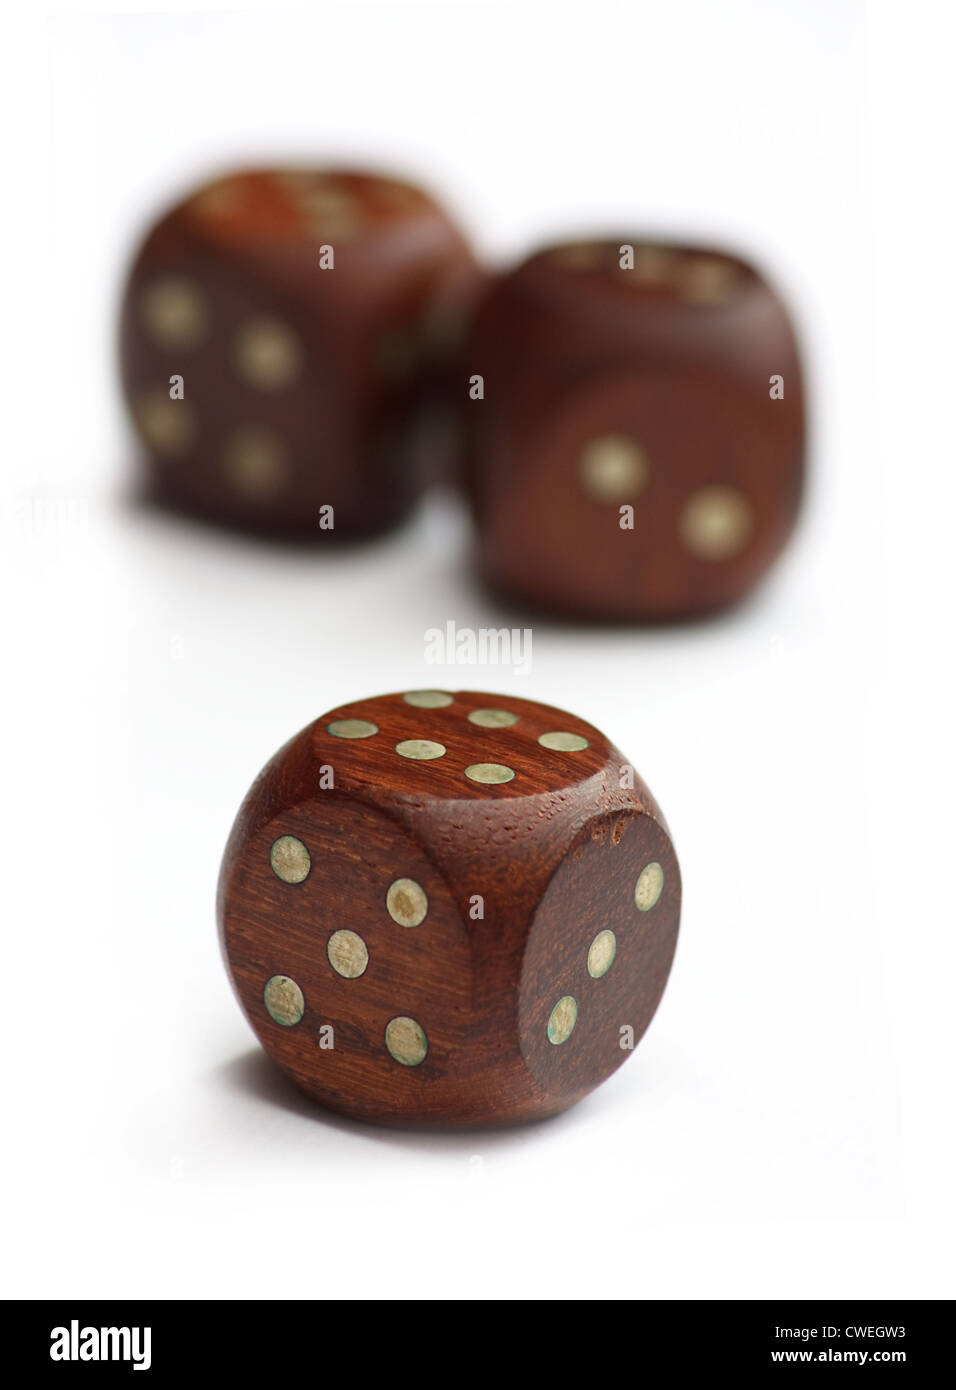 wooden dice on white background - Stock Image